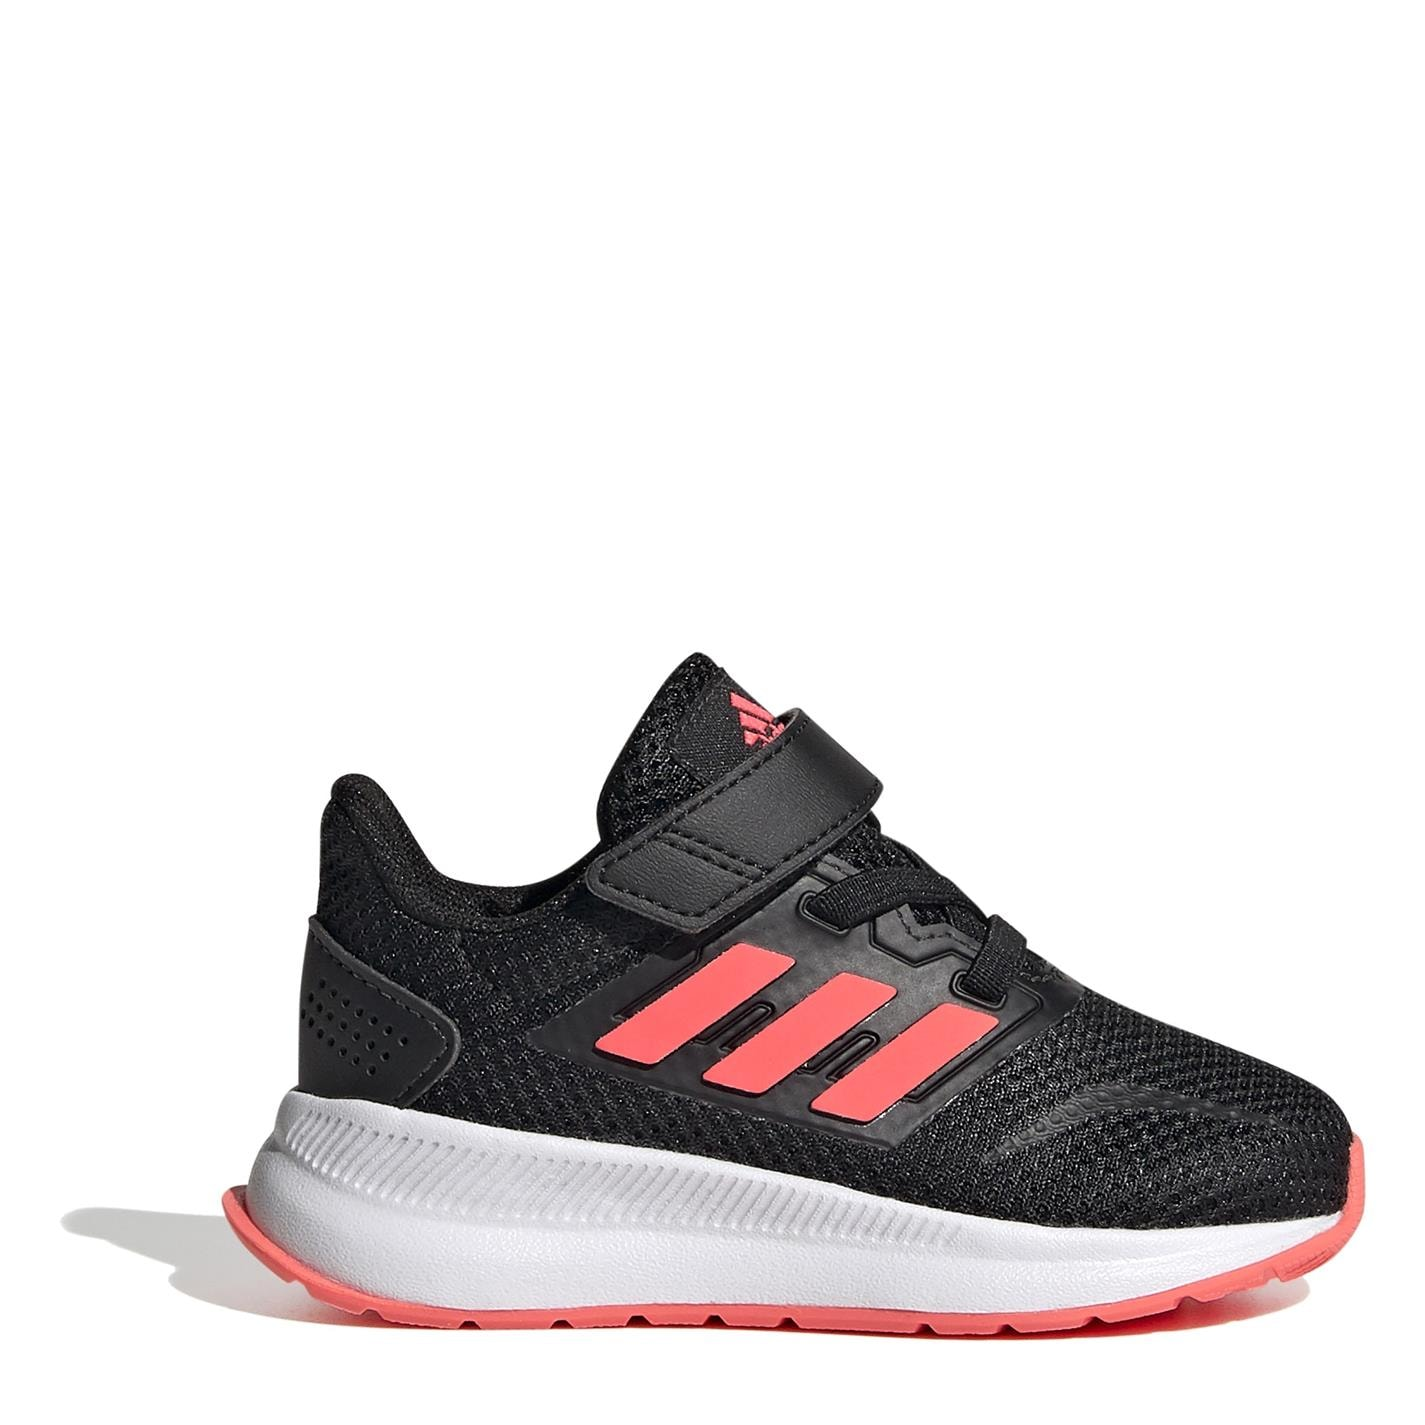 adidas Falcon CF Infant Girls Trainers Blk/Pink/Wht